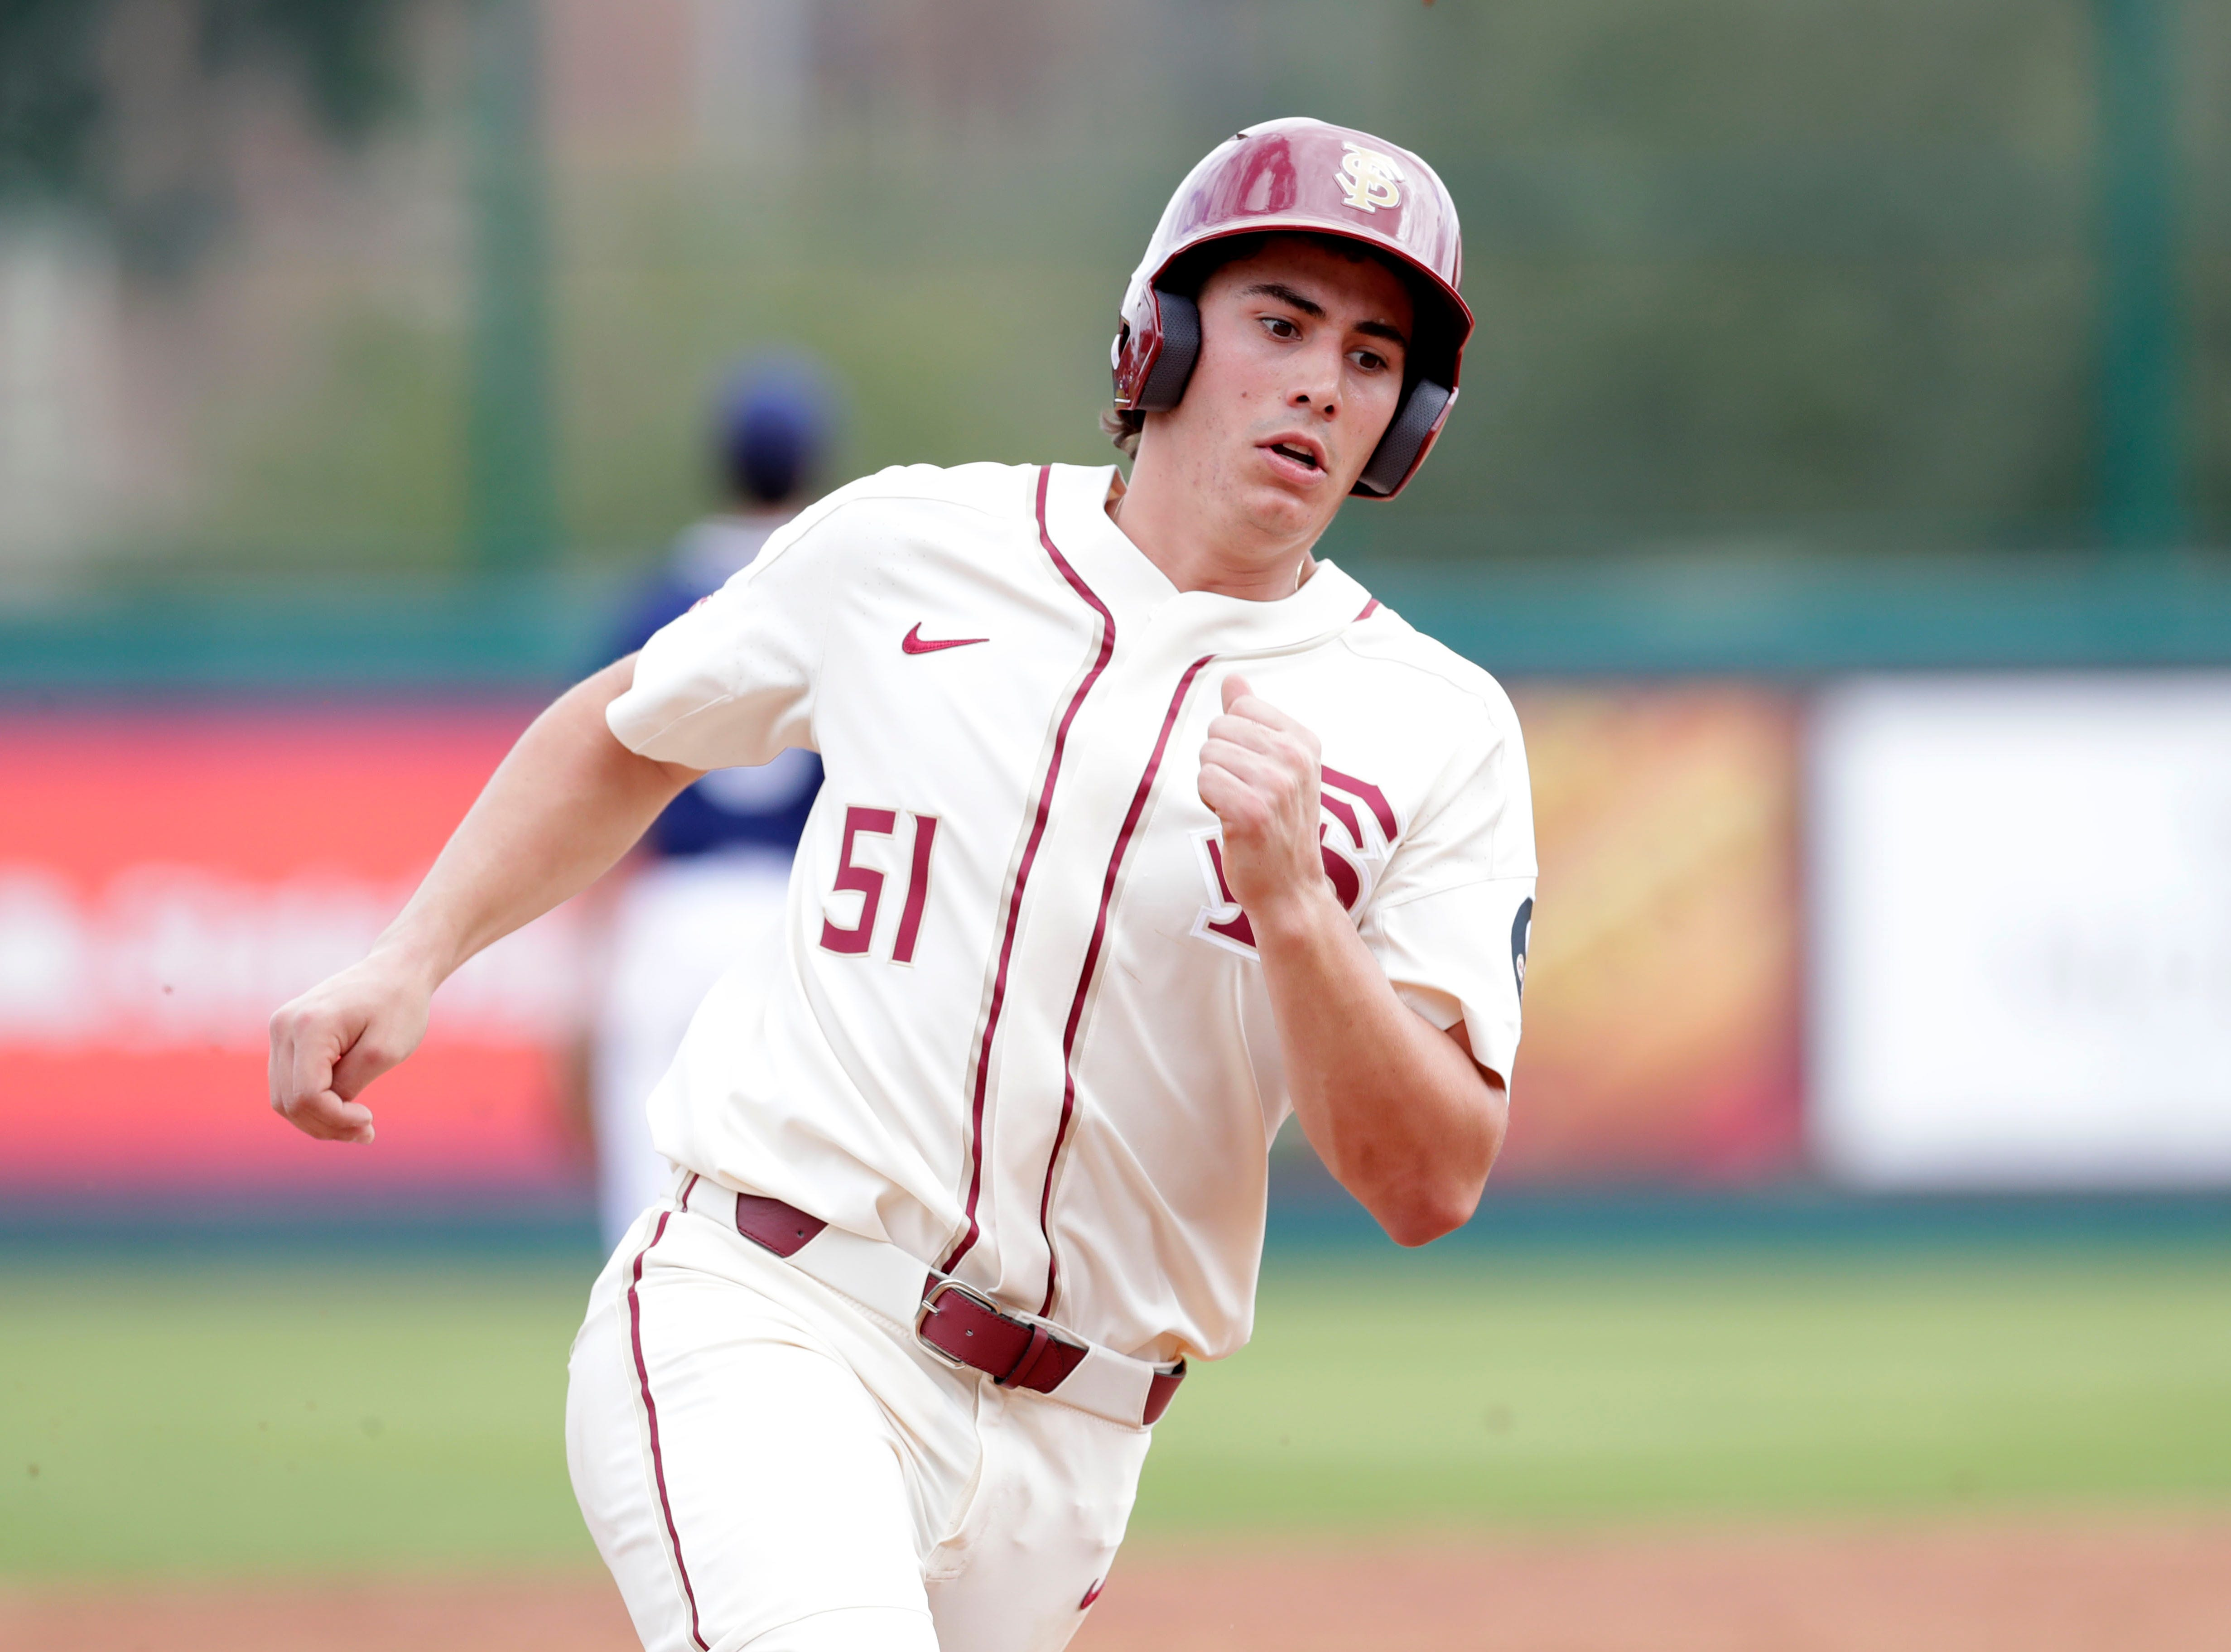 Florida State Seminoles infielder Nico Baldor (51) rounds third base on his way home as the Florida State Seminoles host the Maine Black Bears for the second game of the series, Saturday Feb. 16, 2019.